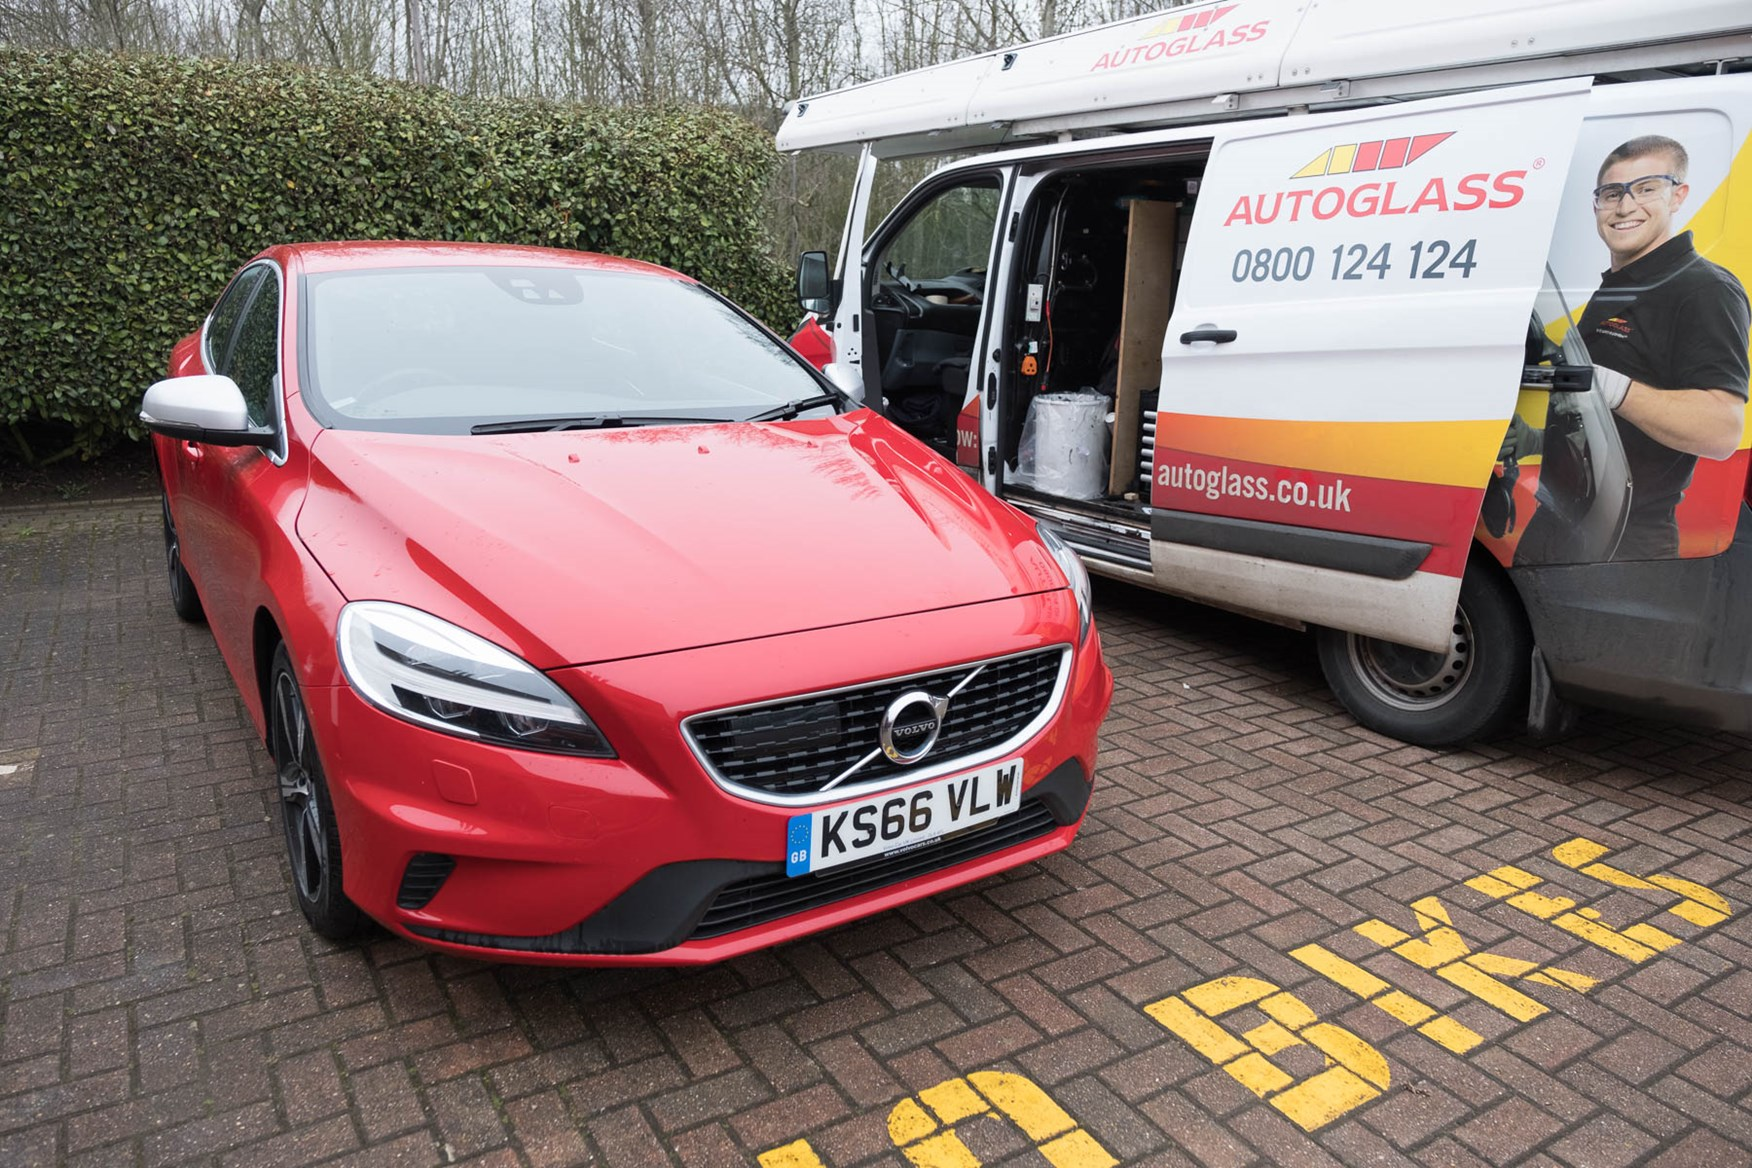 2017 Volvo V40 with new windscreen from Autoglass